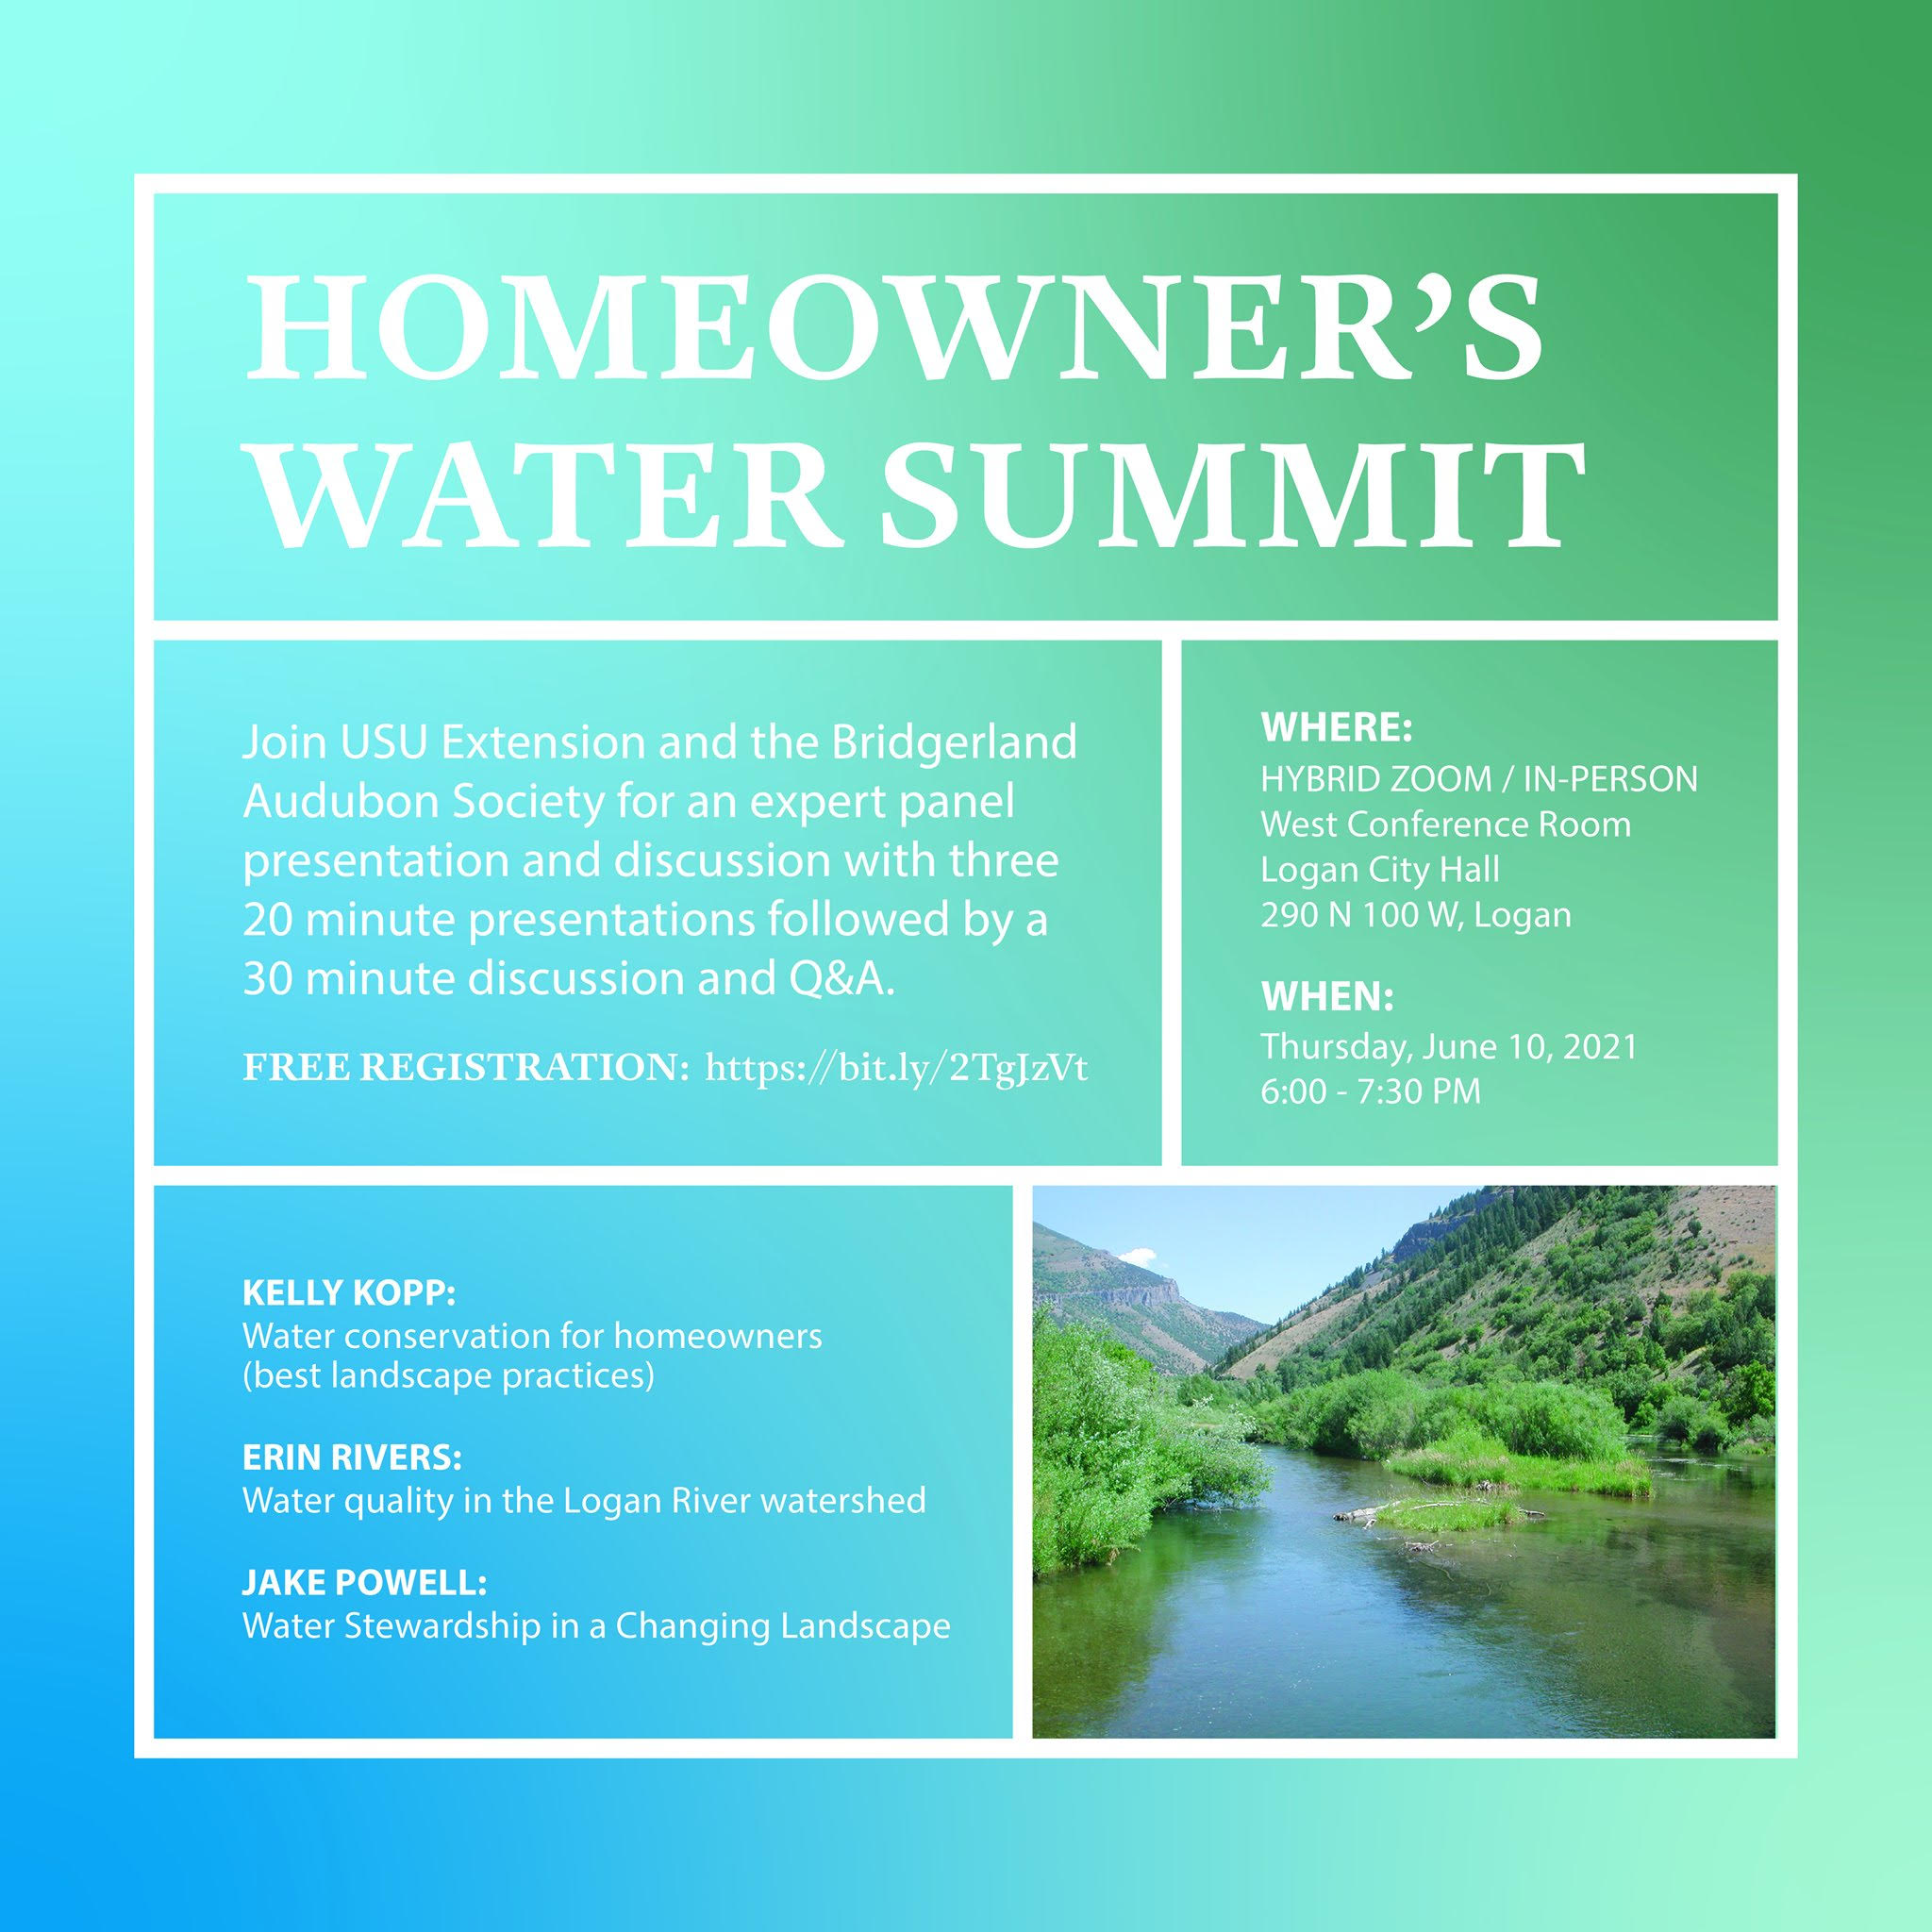 Homeowner's Water Summit: Join Utah State University Extension and the Bridgerland Audubon Society for an expert panel presentation and discussion with three 20 minute presentations followed by a 30 minute discussion and Q&A.